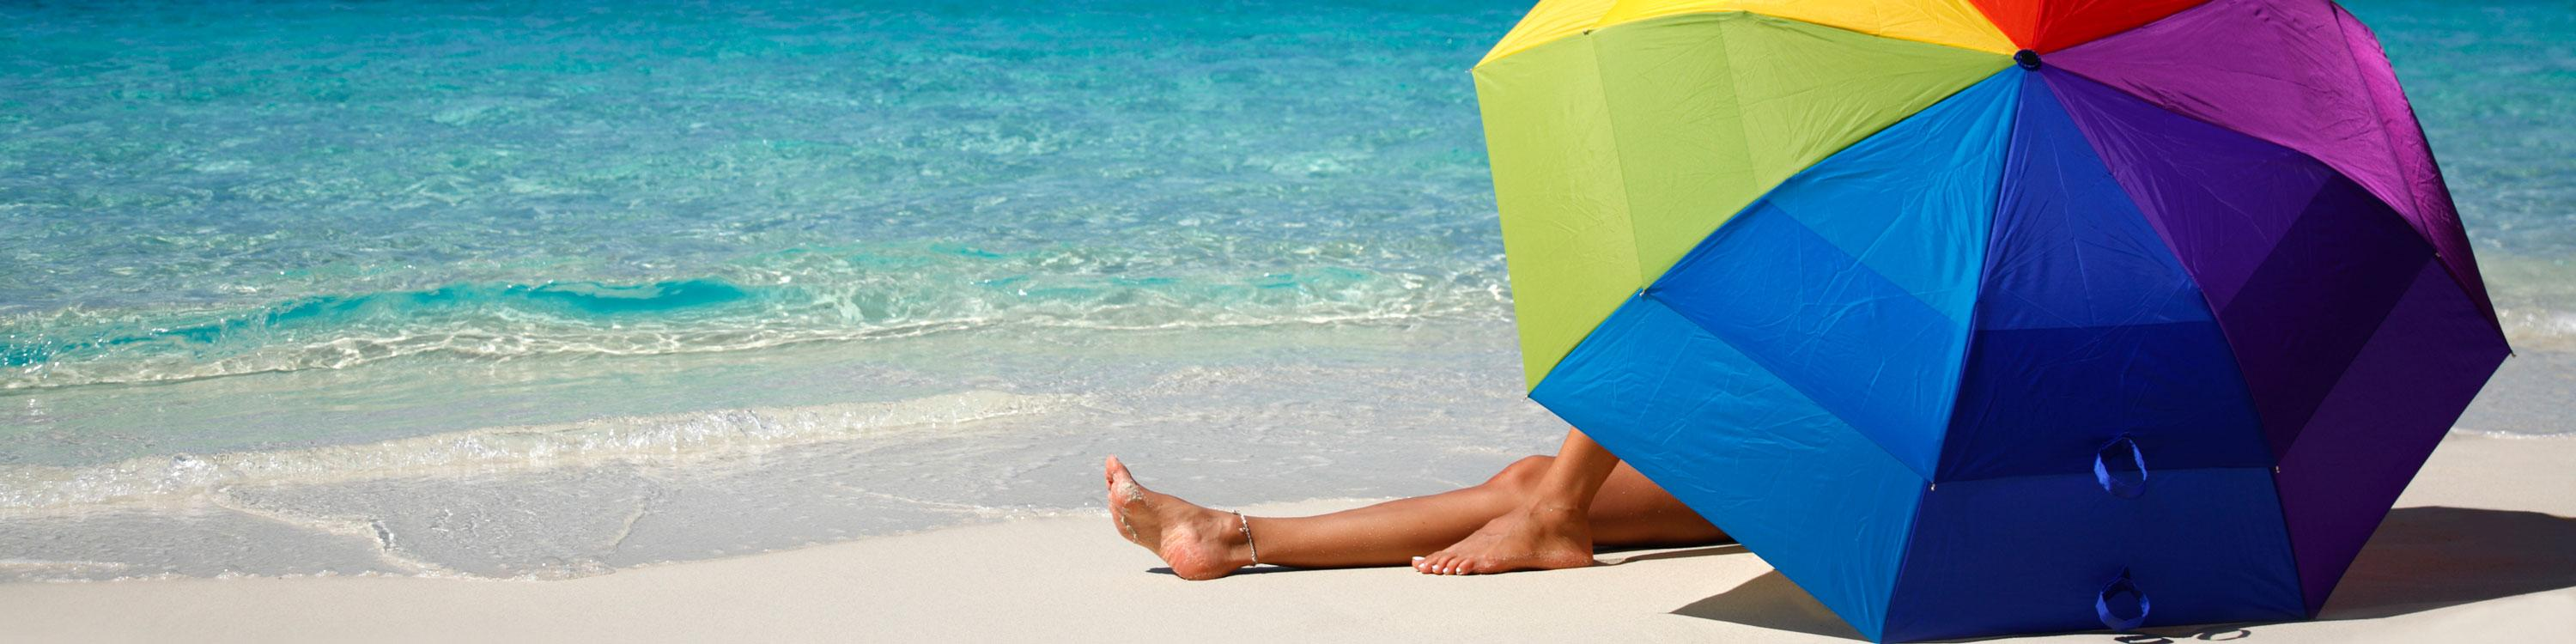 Umbrella on Beach, CAA Travel Insurance